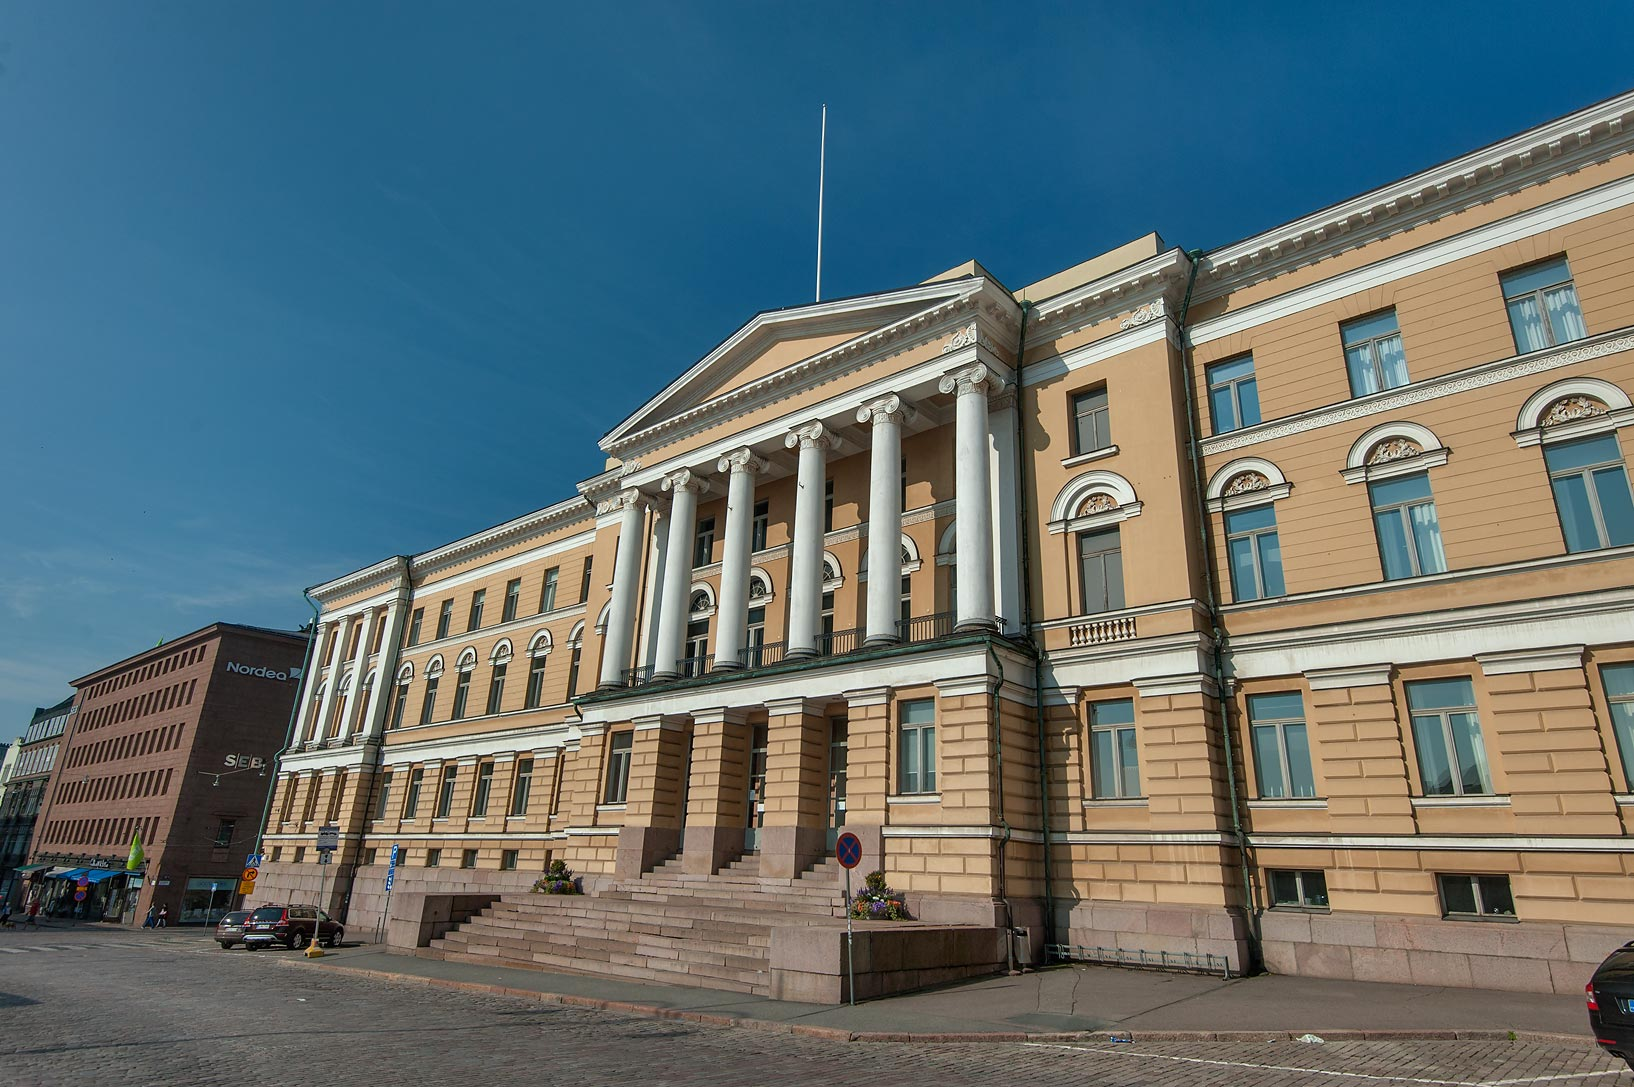 Main University Building on Senate Square. Helsinki, Finland